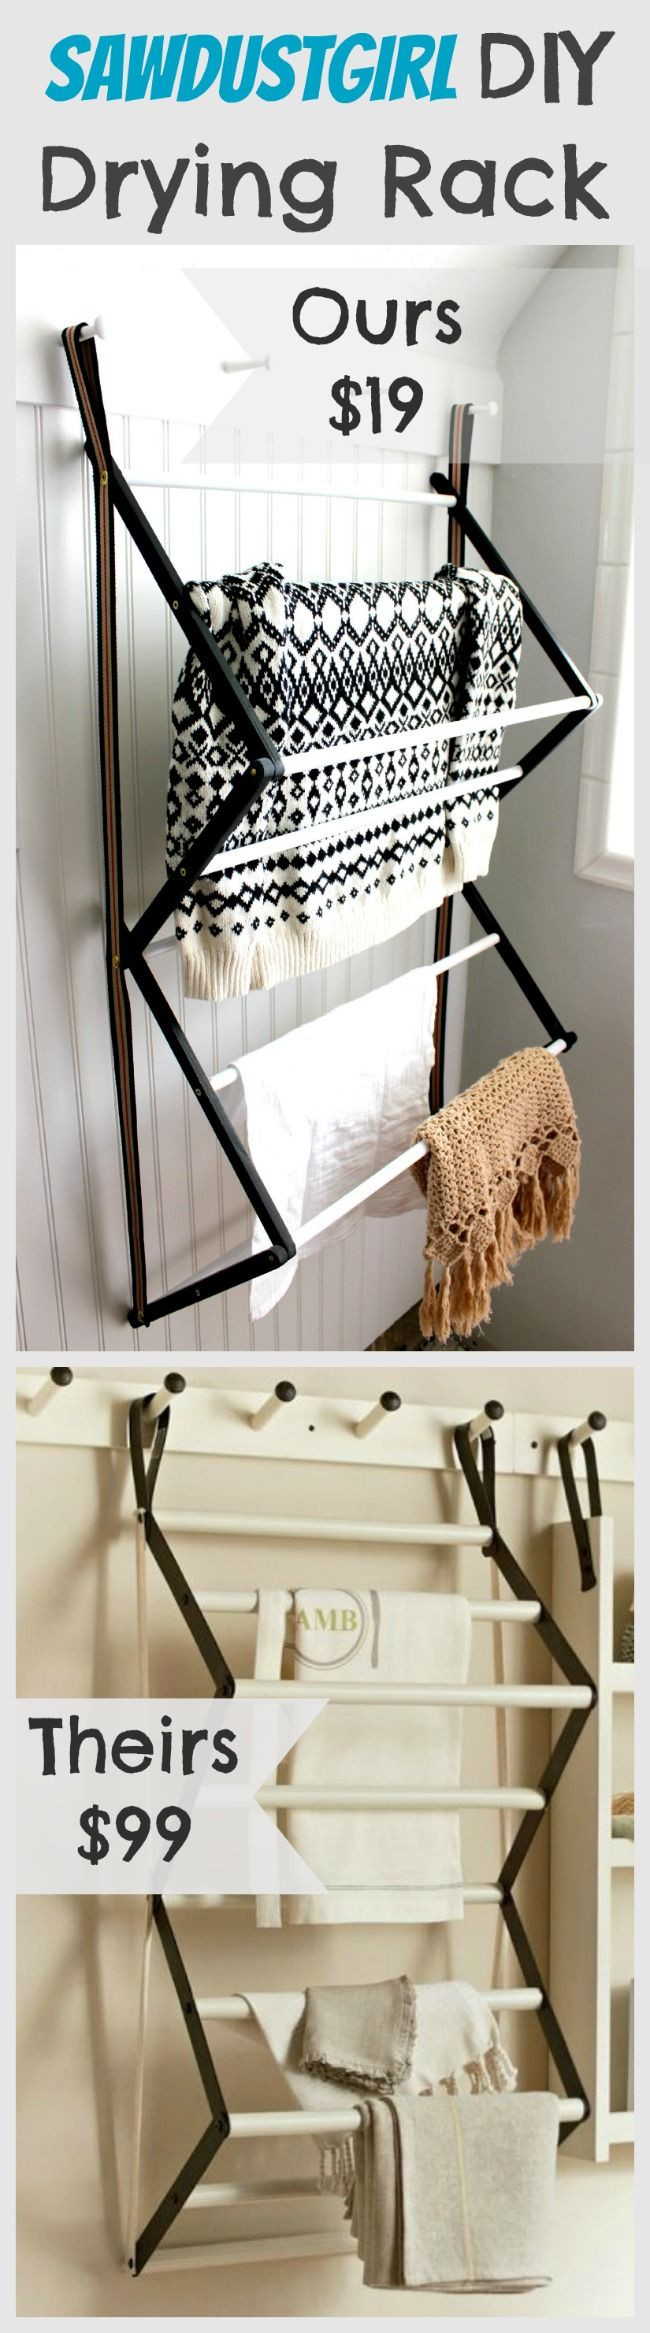 DIY Drying Rack  Diy Laundry Drying Rack WoodWorking Projects & Plans